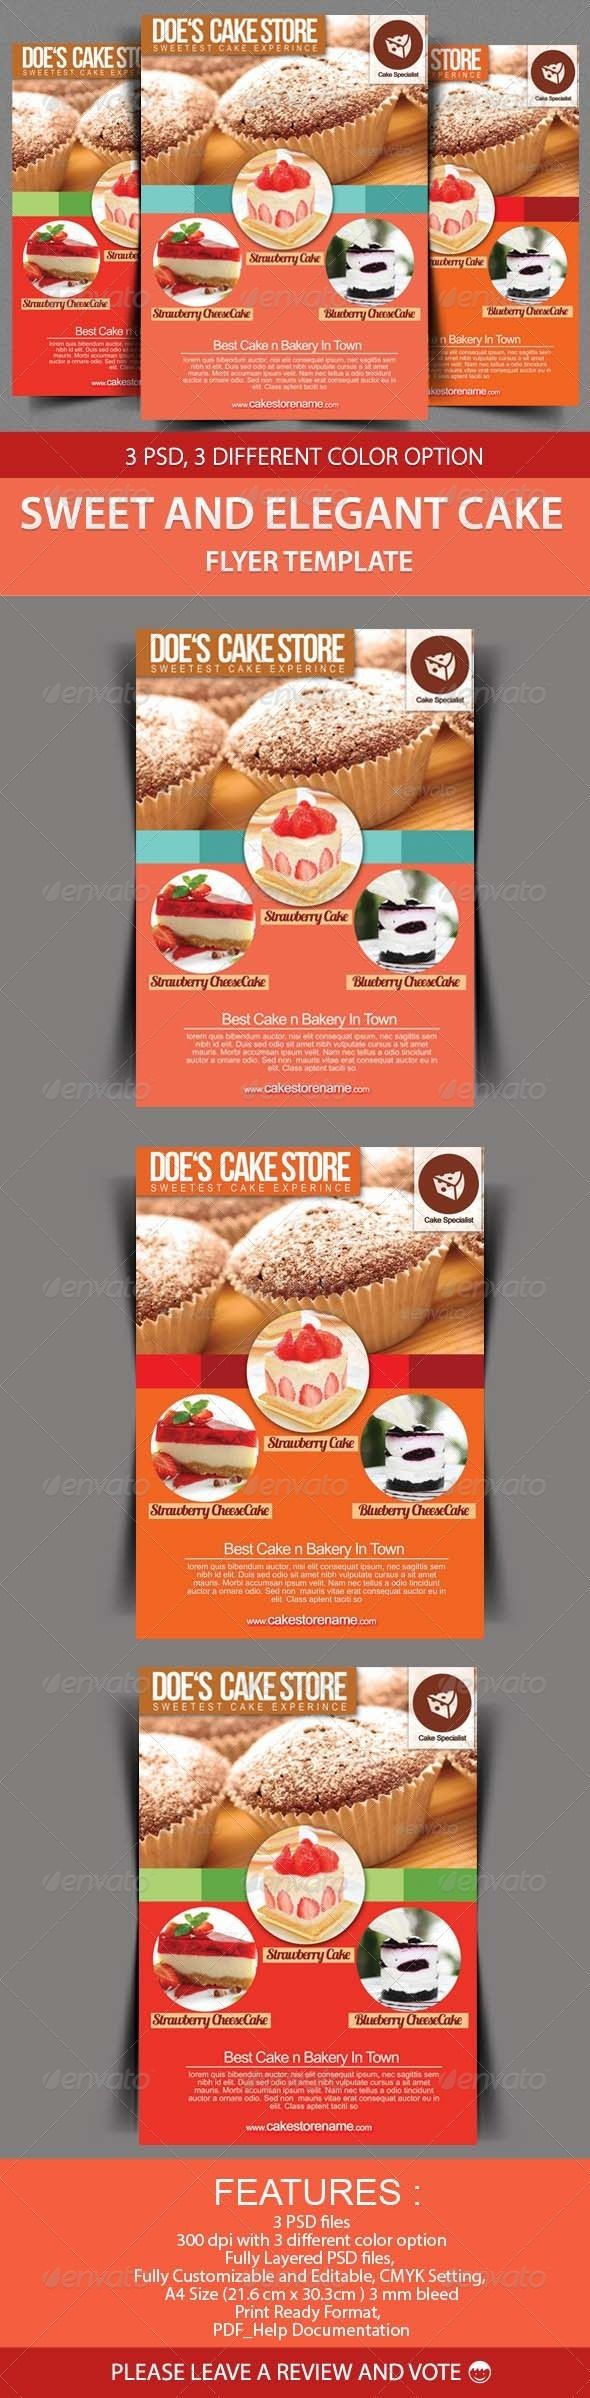 Sweet and Elegant Cake Flyer Template